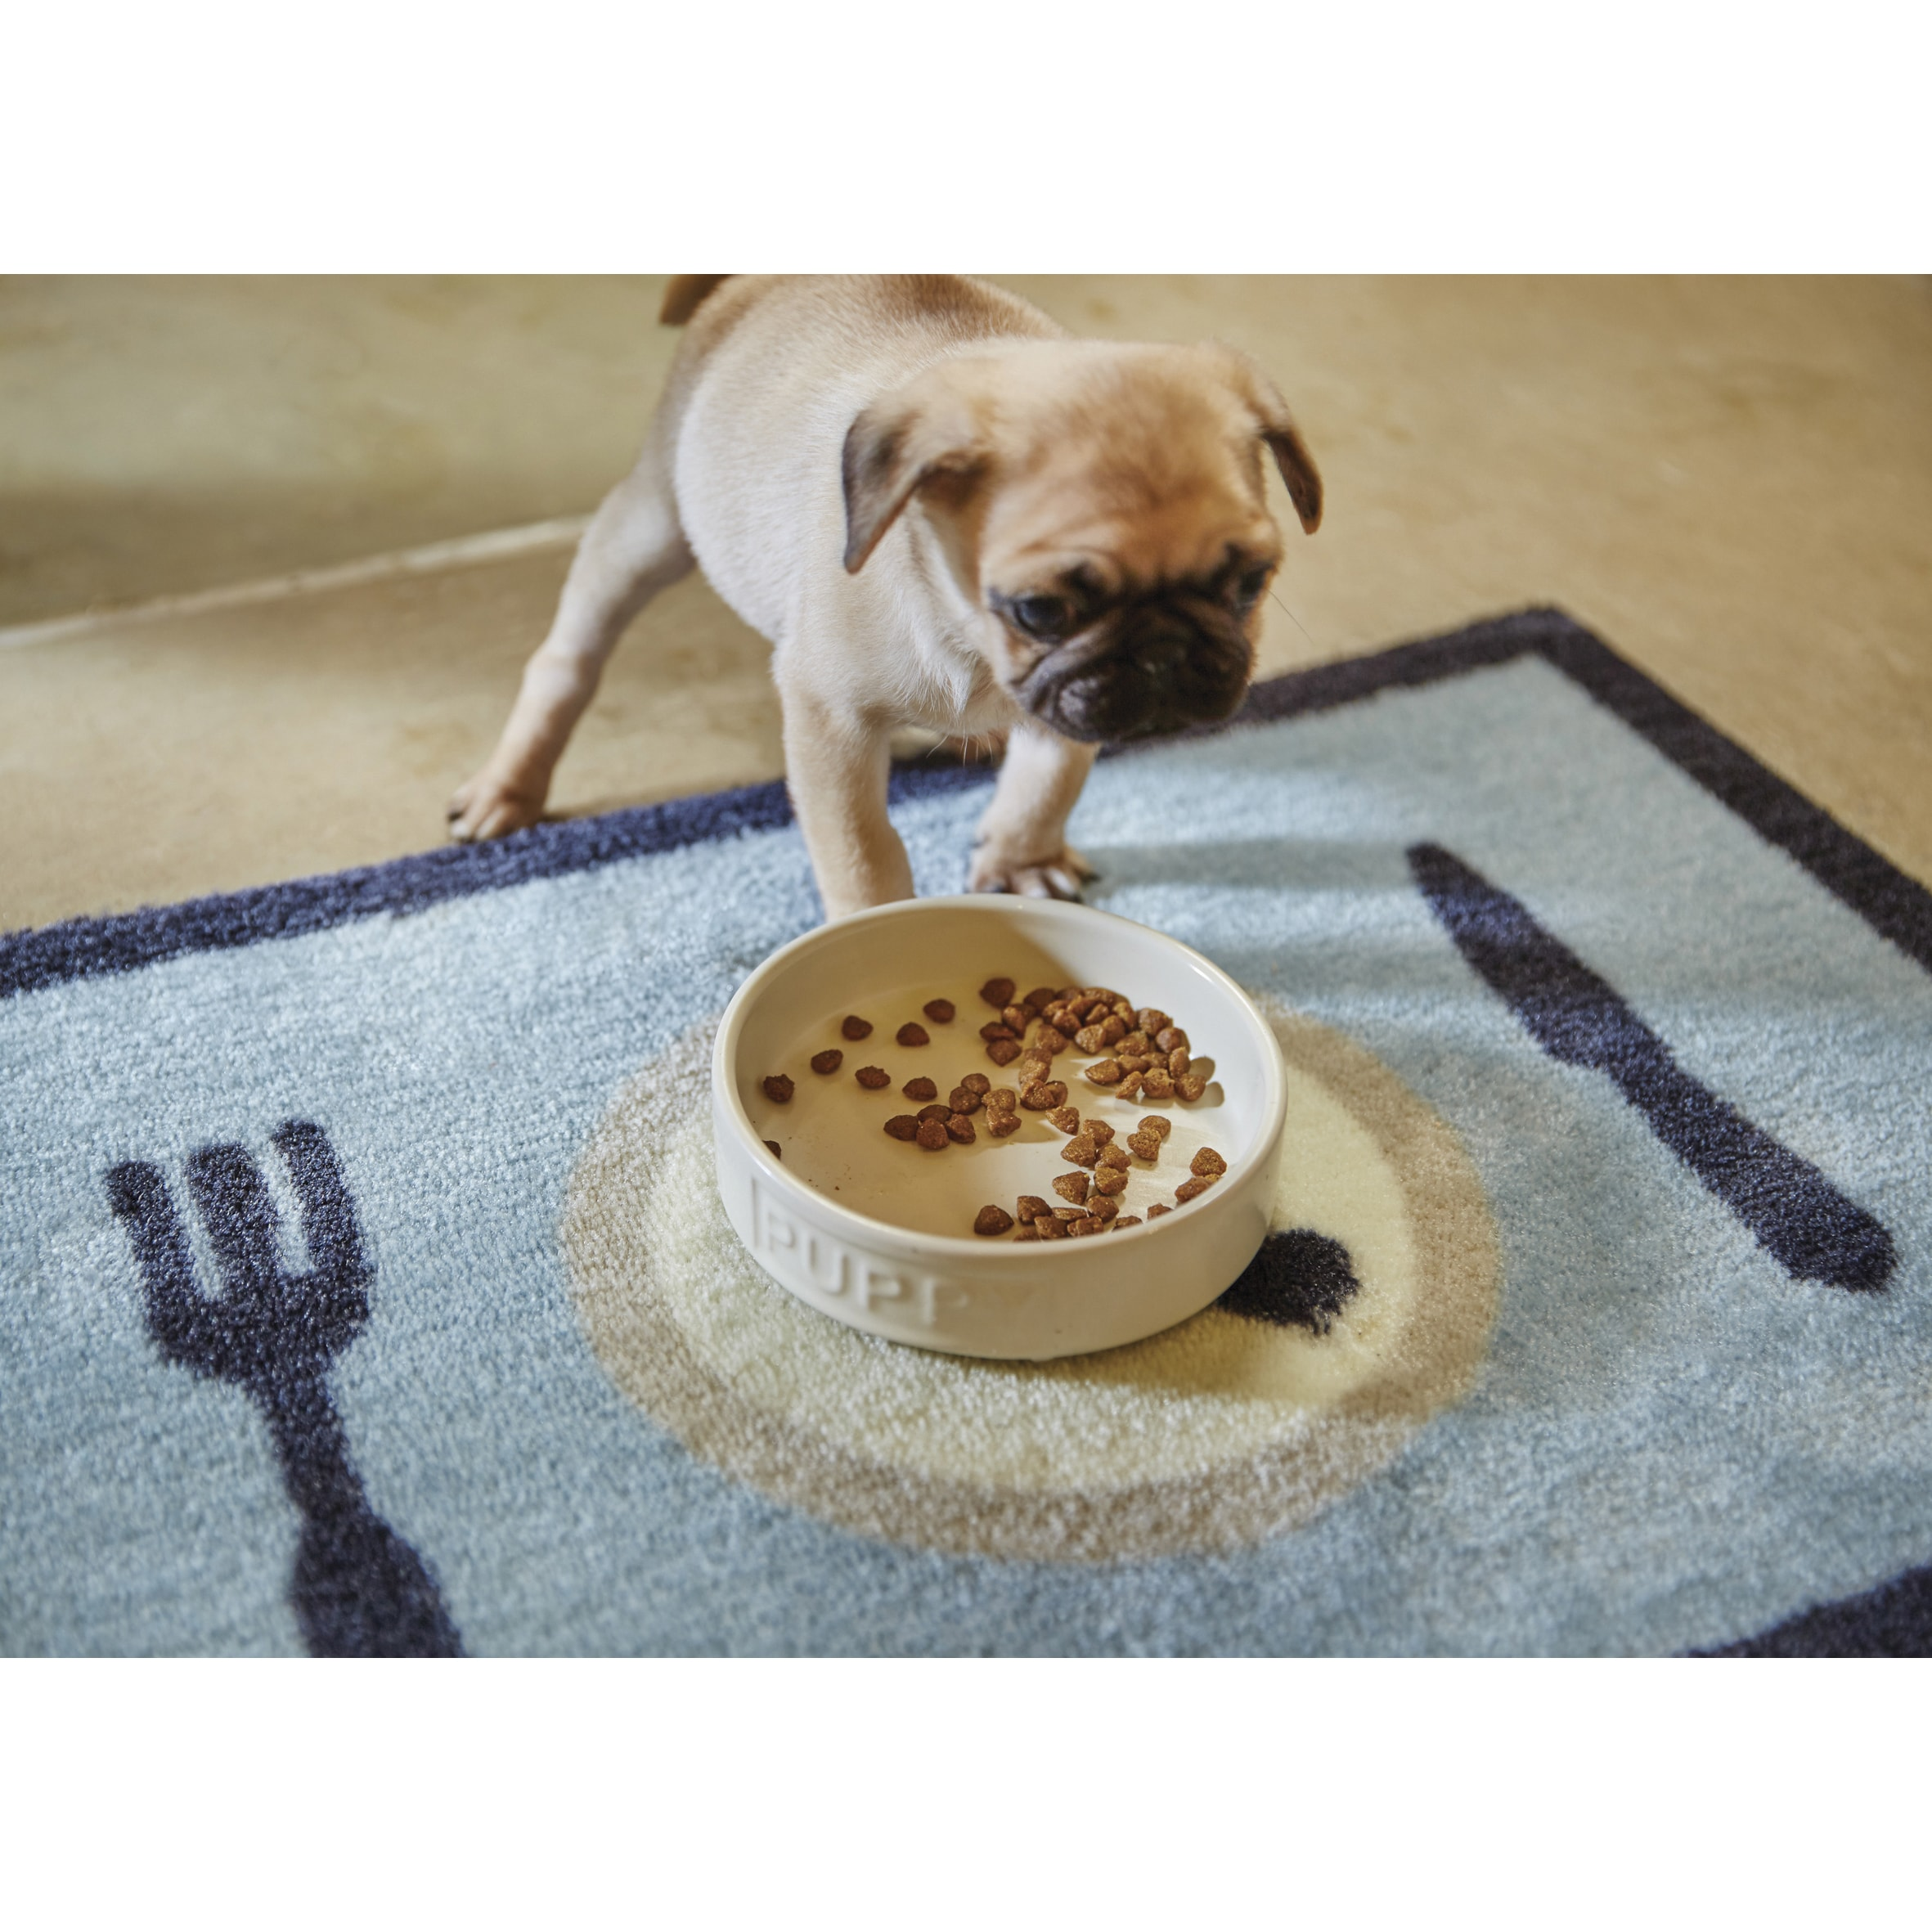 LTD Howler and Scratch Dinner Time Heavy-duty Washable Pe...